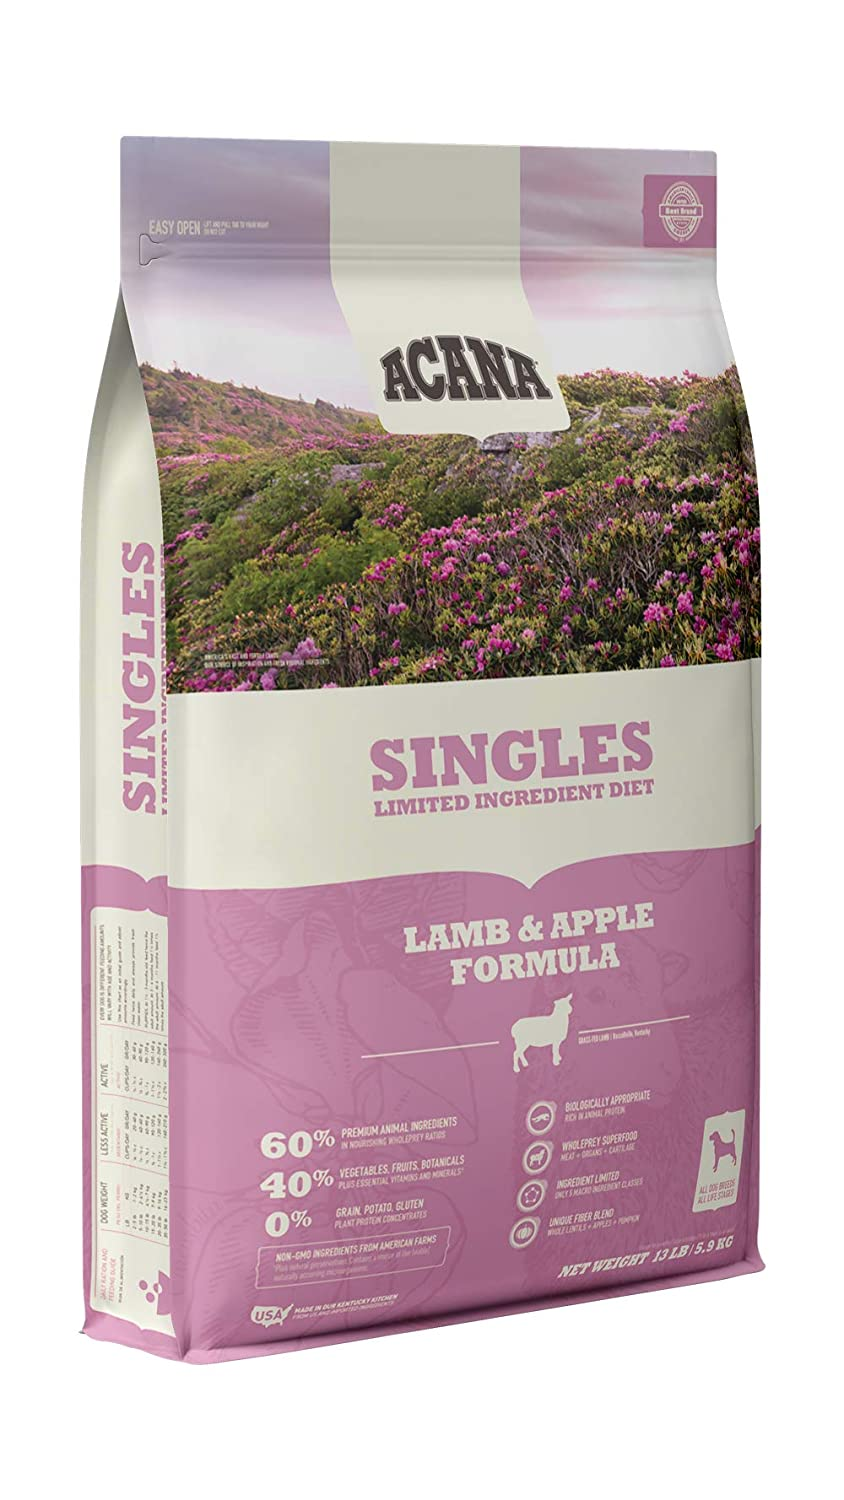 3. Acana Singles Limited Ingredient Dry Dog Food